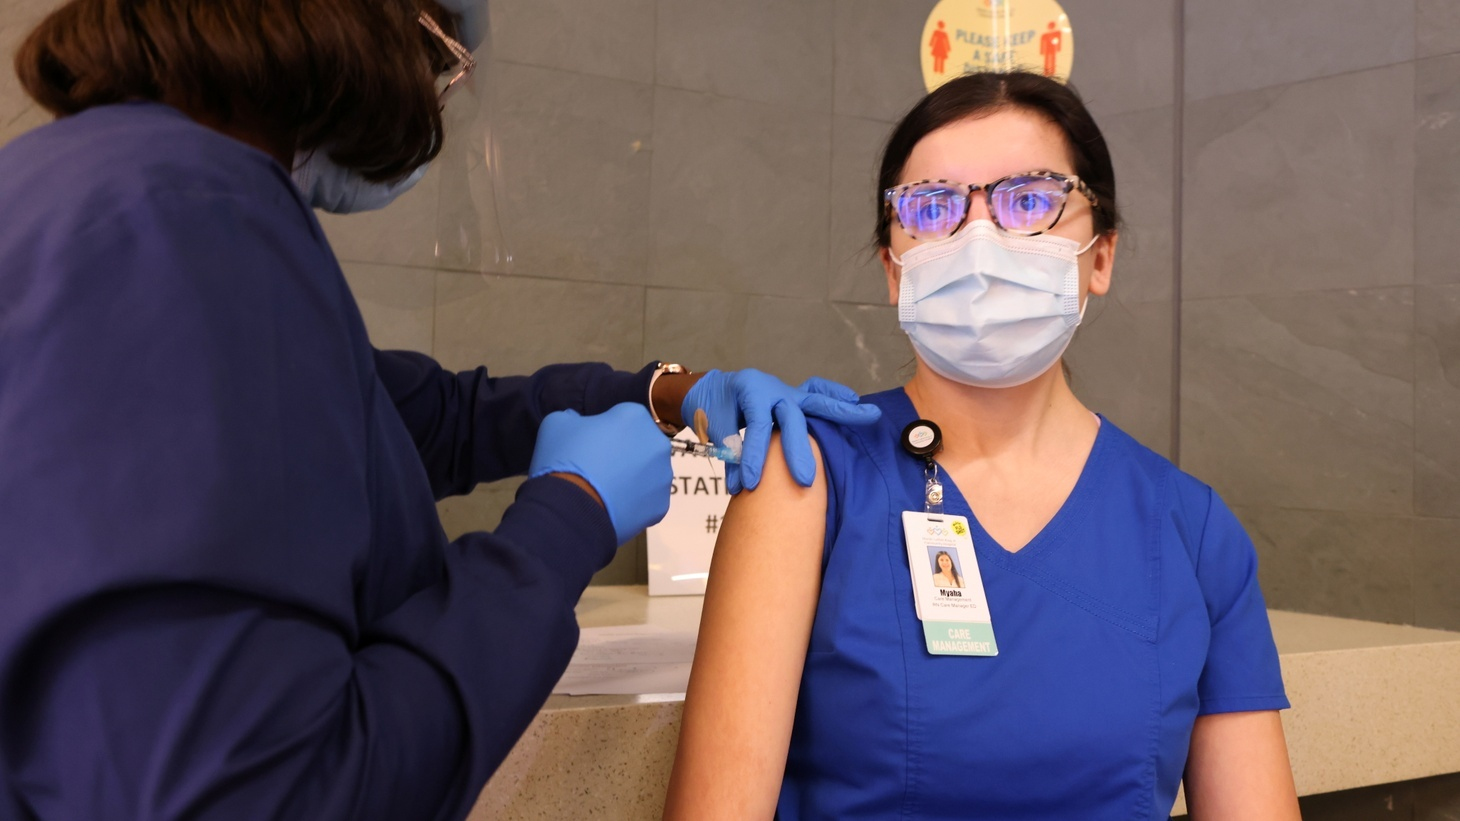 ER case manager Myaha Tovar, 24, is given the coronavirus disease (COVID-19) vaccine at Martin Luther King Jr. Community Hospital in South Los Angeles, California, U.S., December 17, 2020.